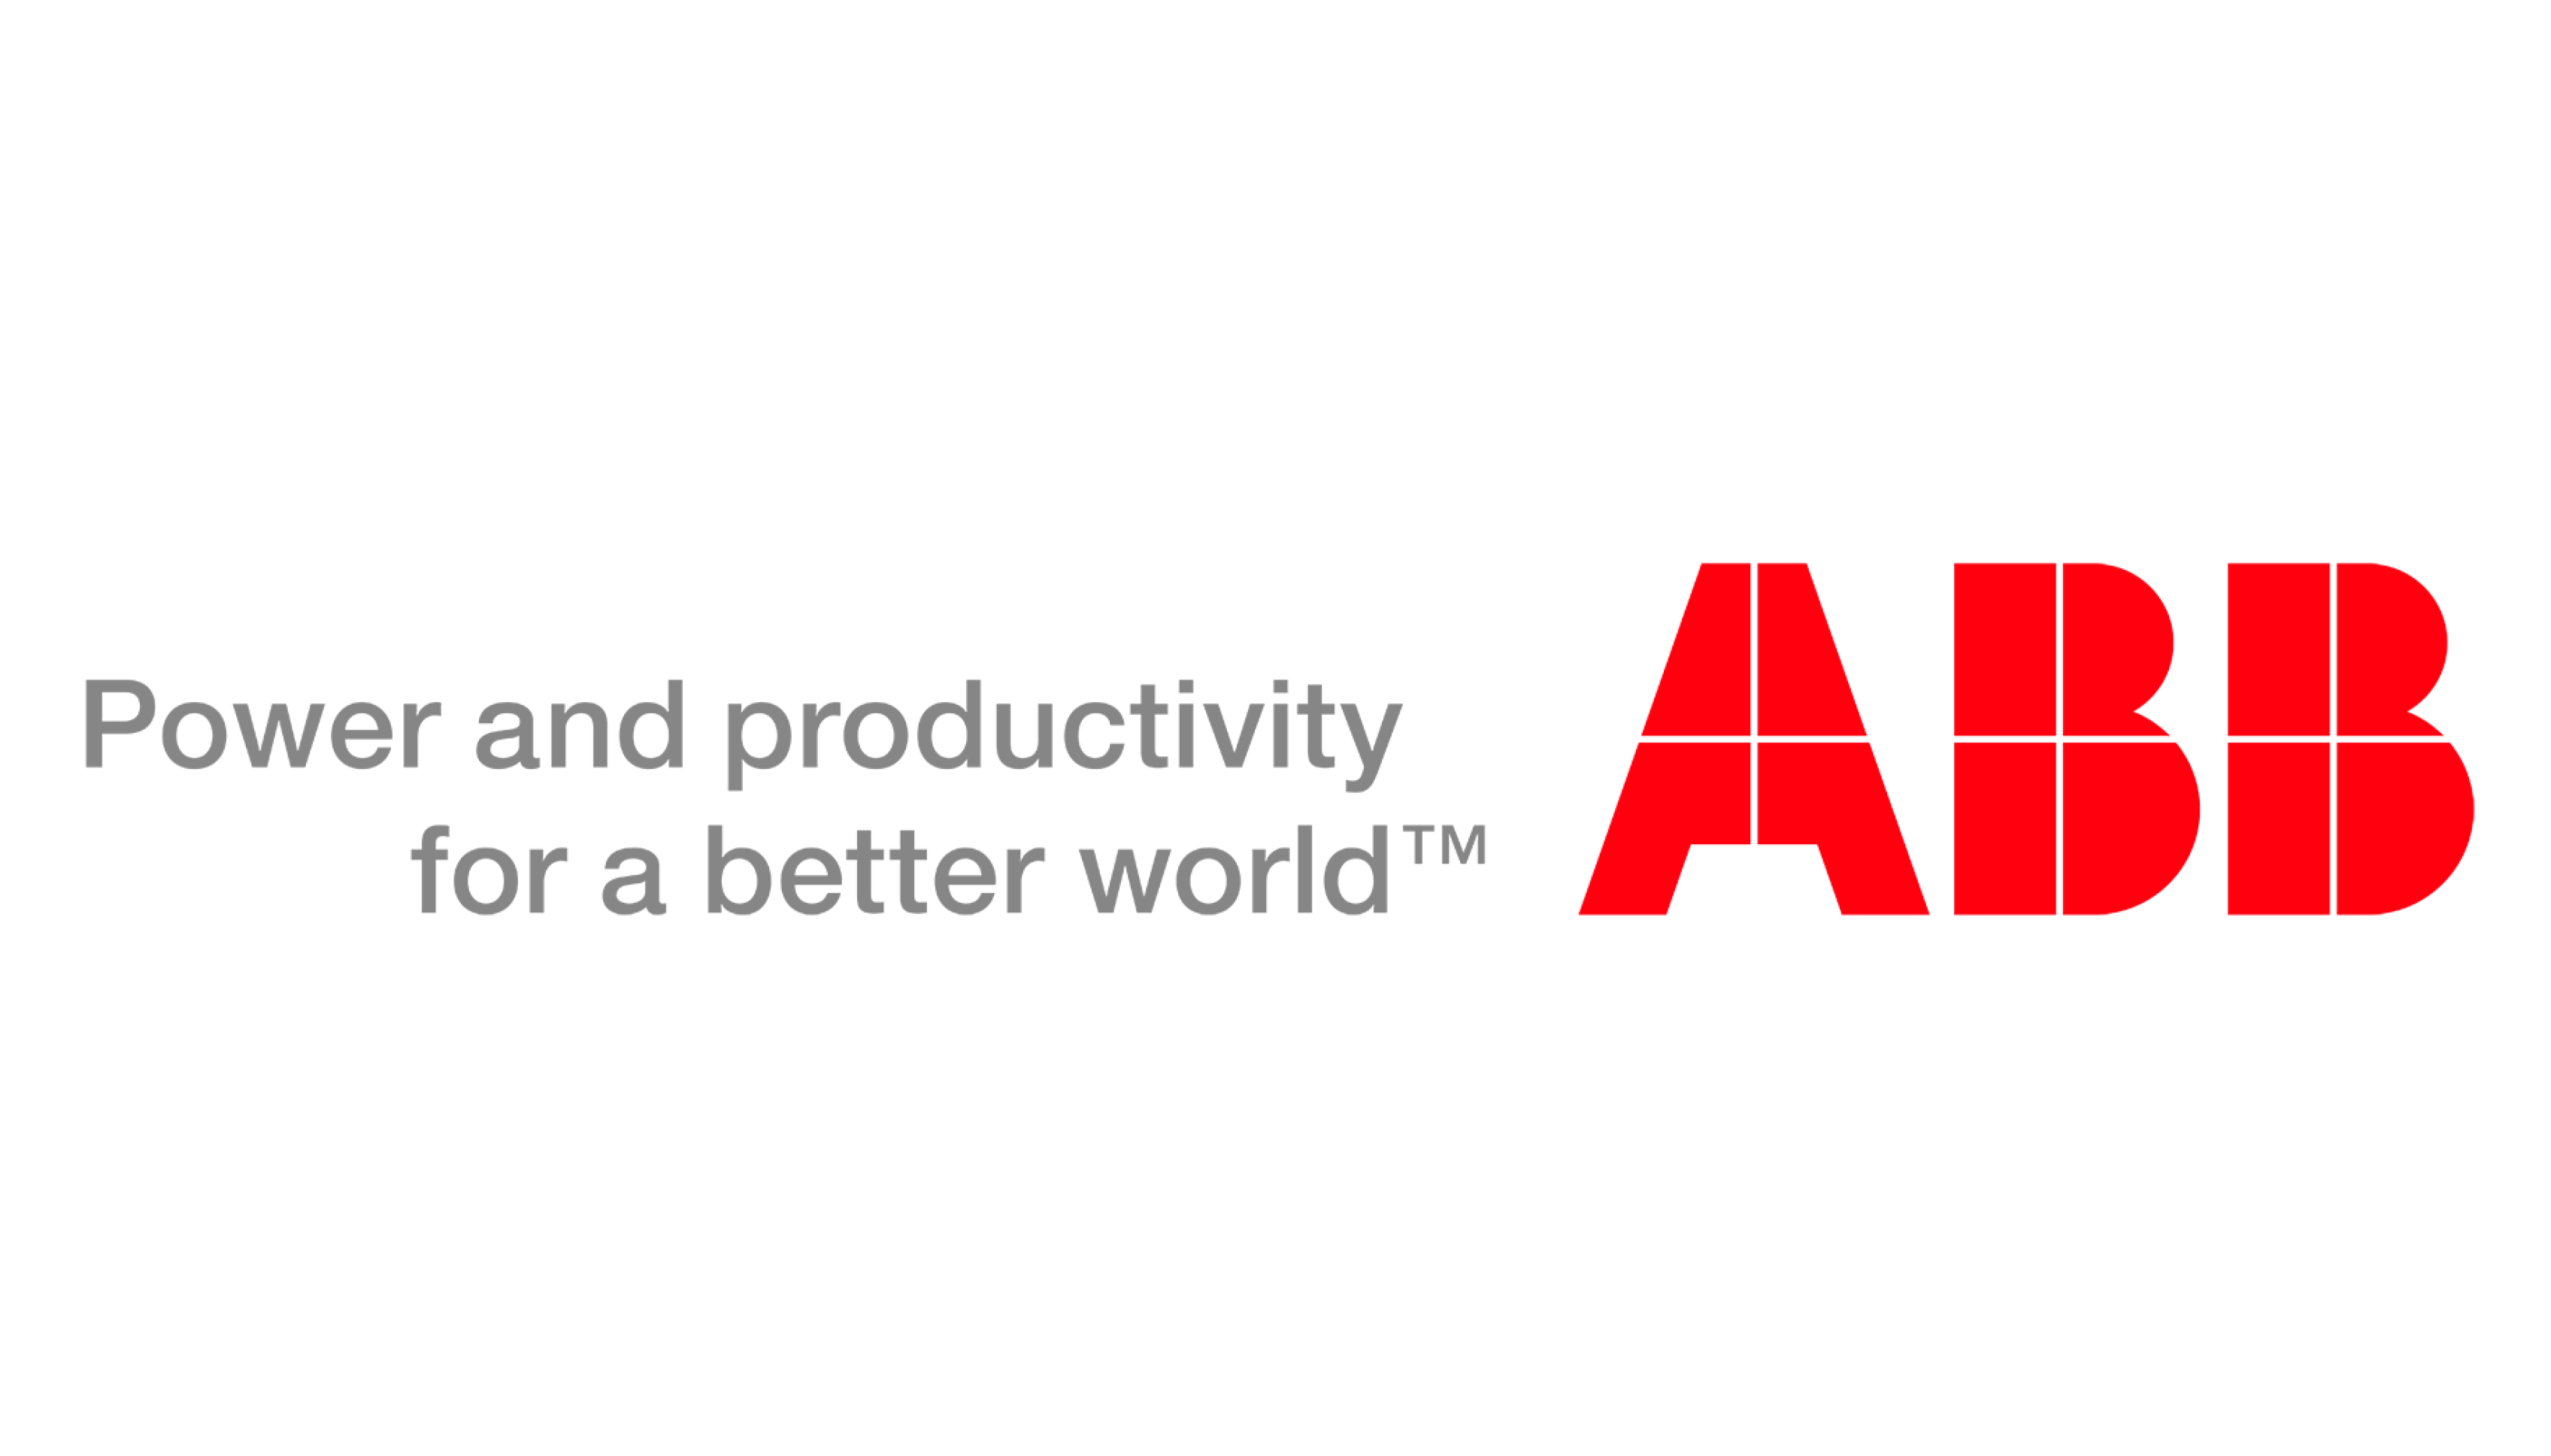 ABB's donation drives learning in power electronics at Monash University